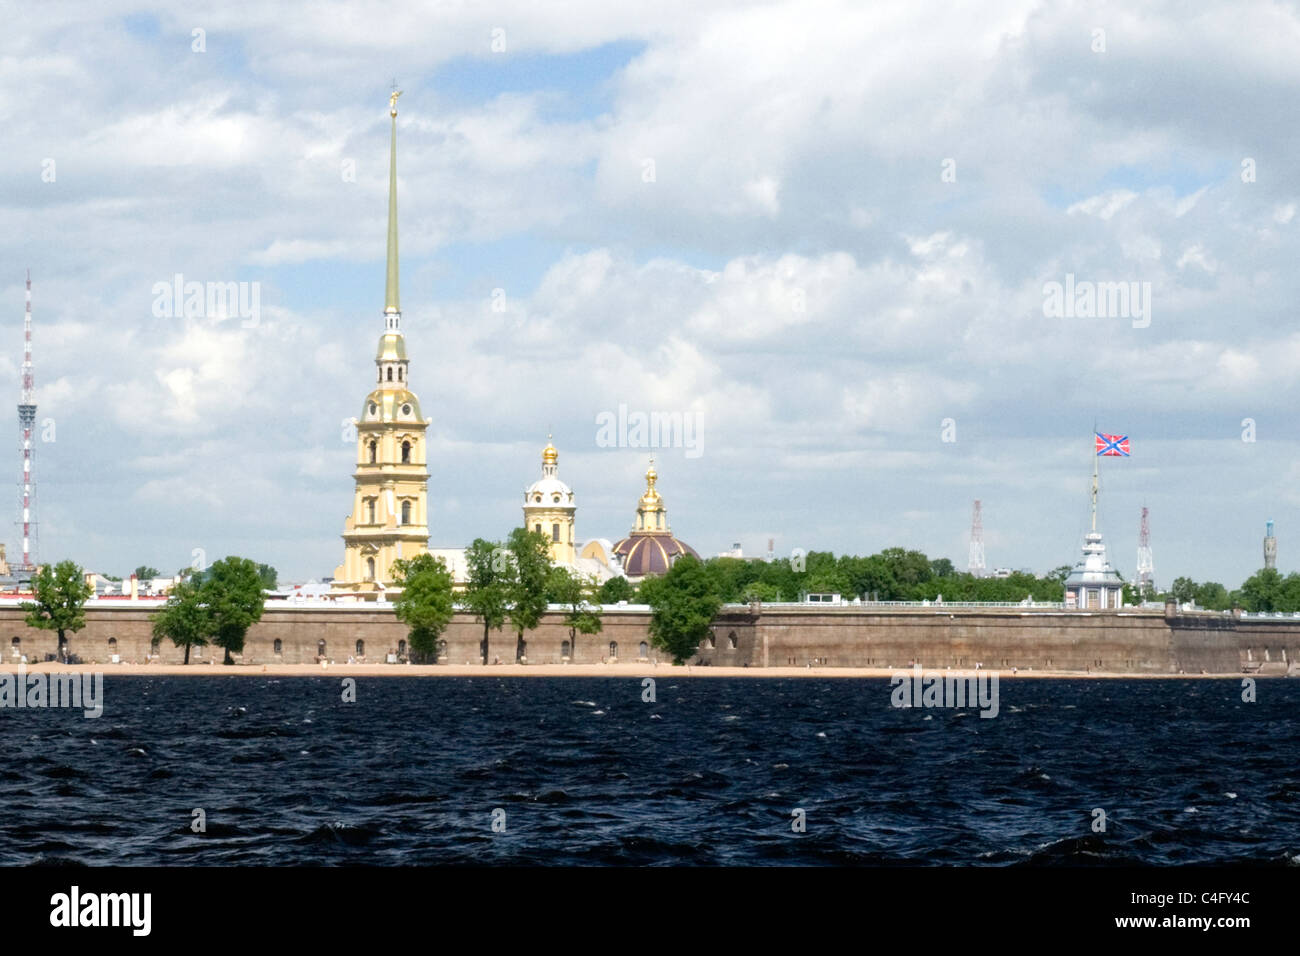 Russia , St Petersburg , Peter & Paul Fortress over River Neva Riva - Stock Image